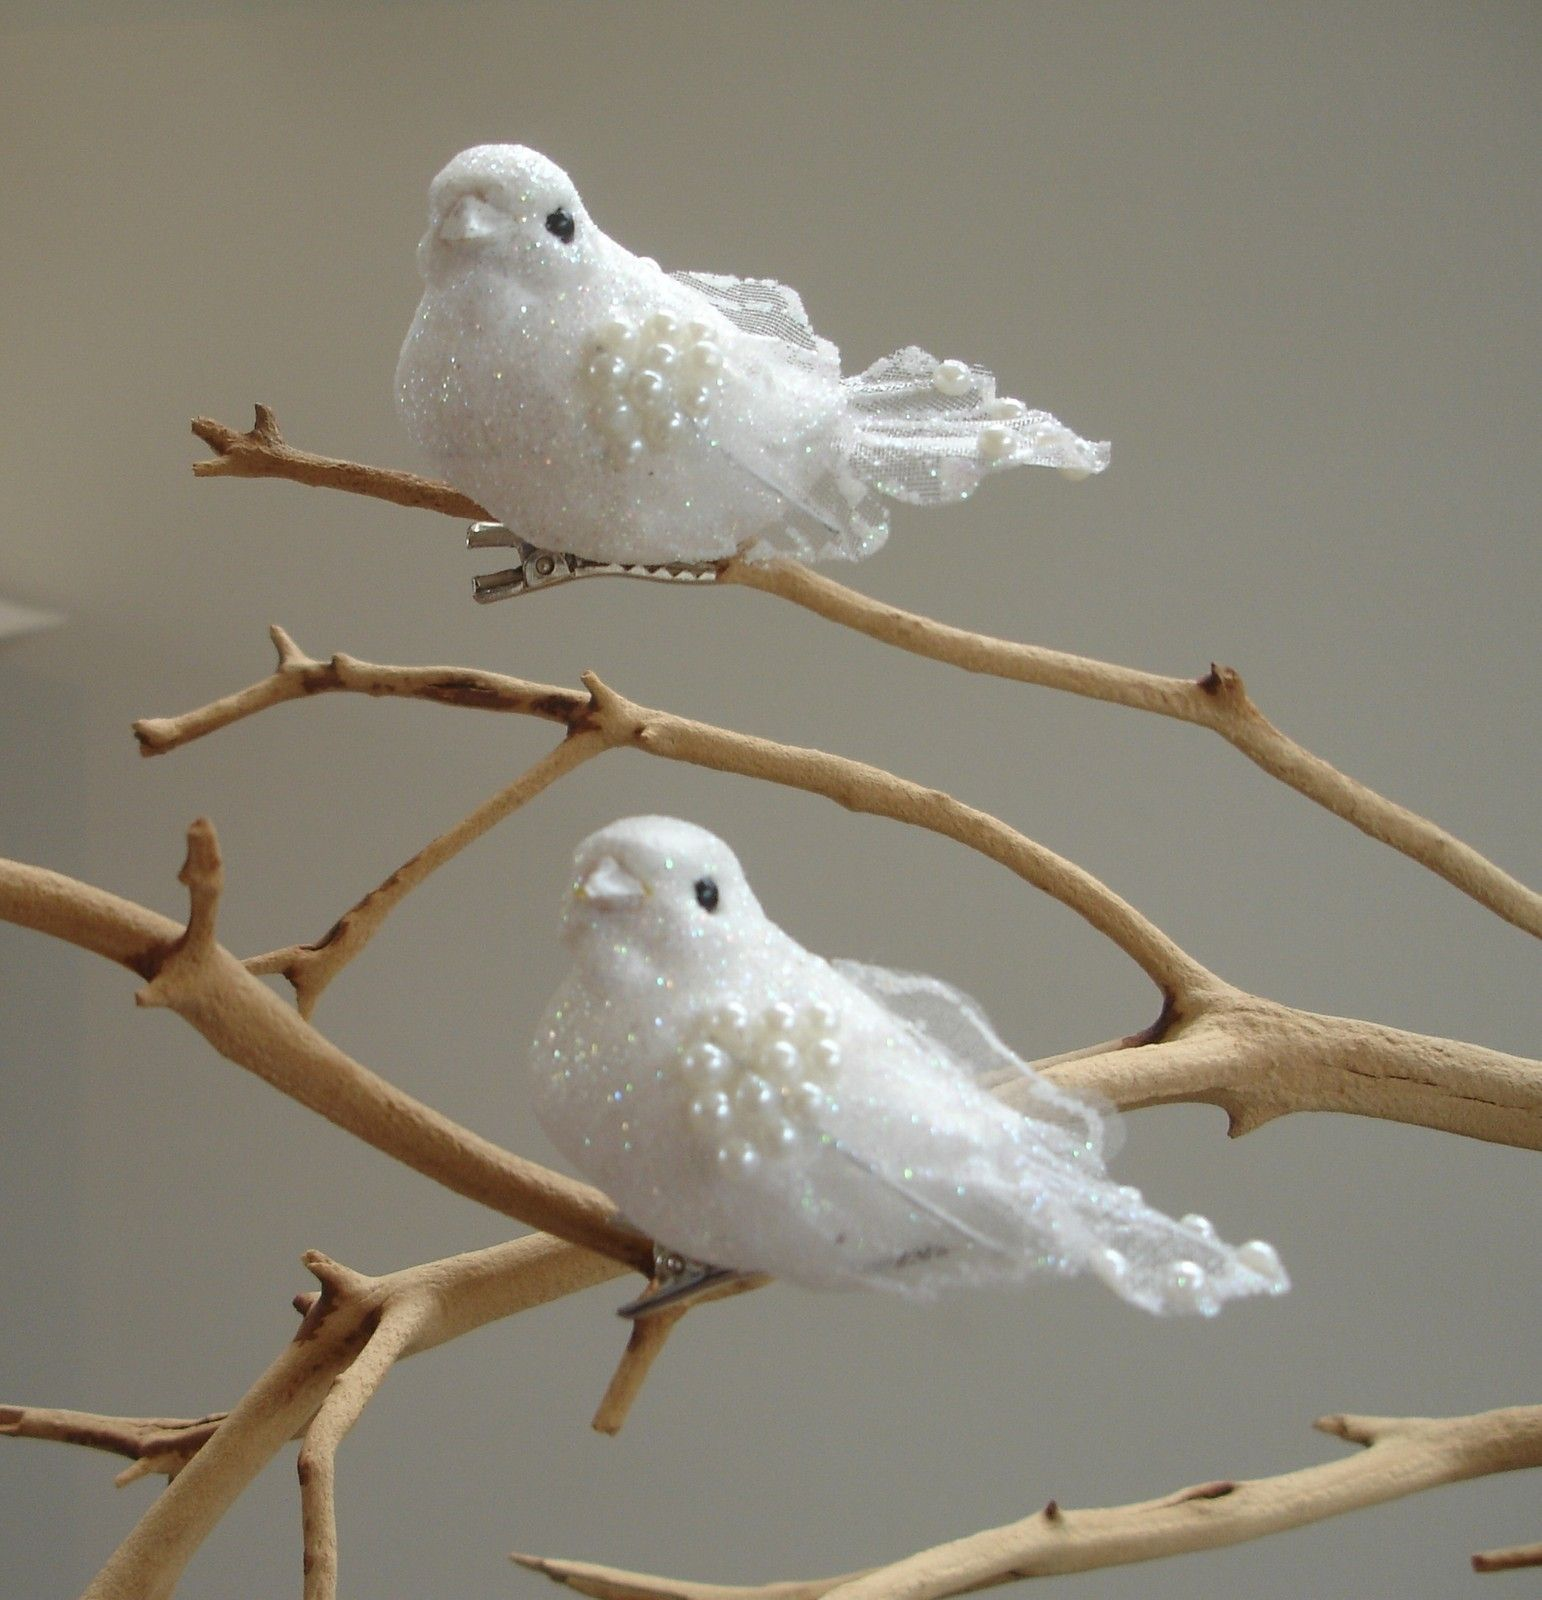 White dove ornament - Two Turtle Doves Fake Turtle Doves Inside A Small Bird Cage